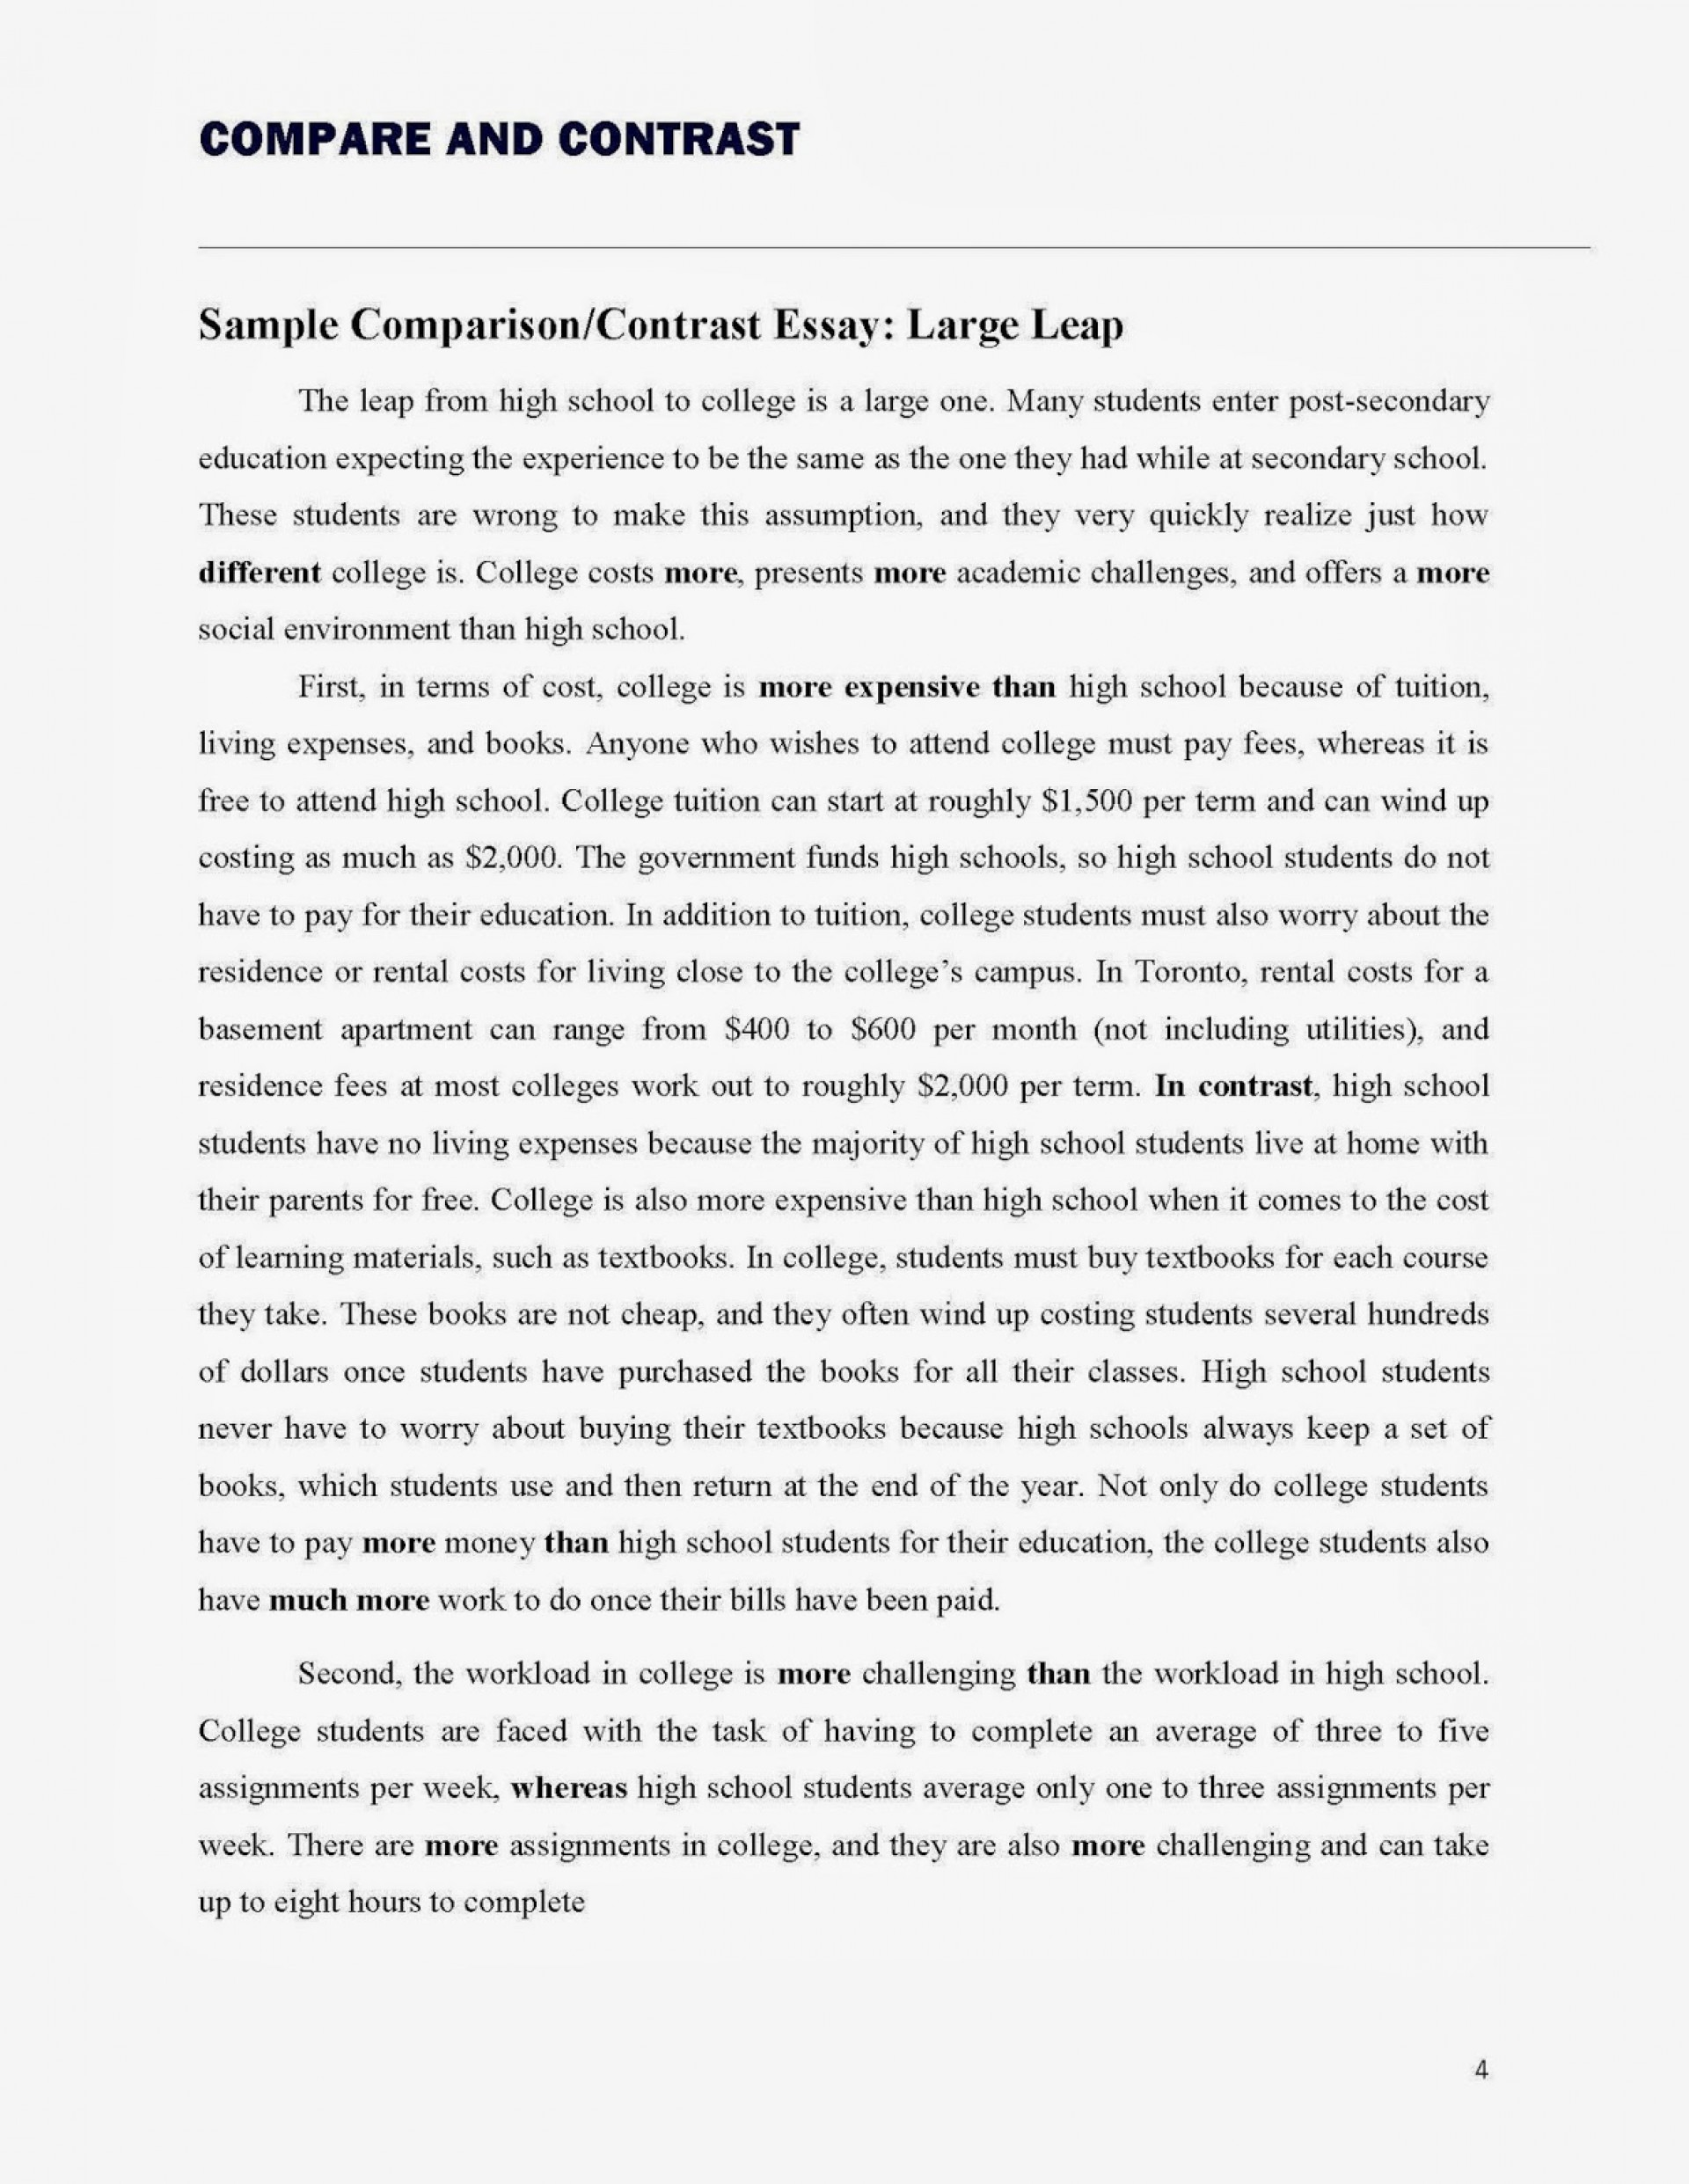 011 Compare And Contrast Essay Compareandcontrastessay Page 4h125 Frightening Outline Block Method Ideas High School Template For Middle 1920